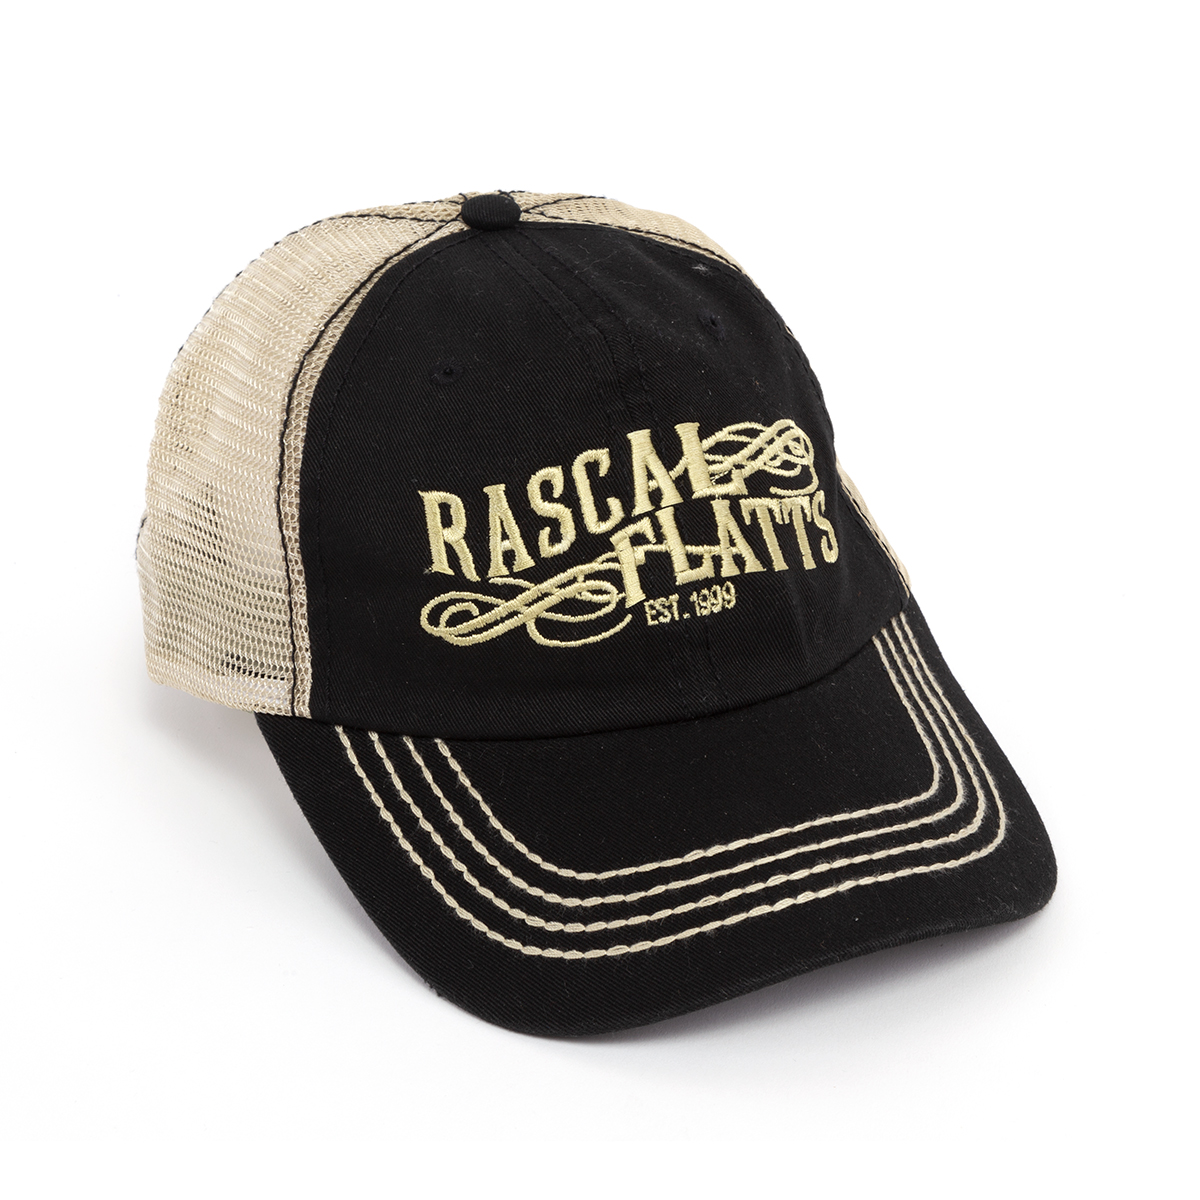 Racal Flatts Logo Black Trucker Hat